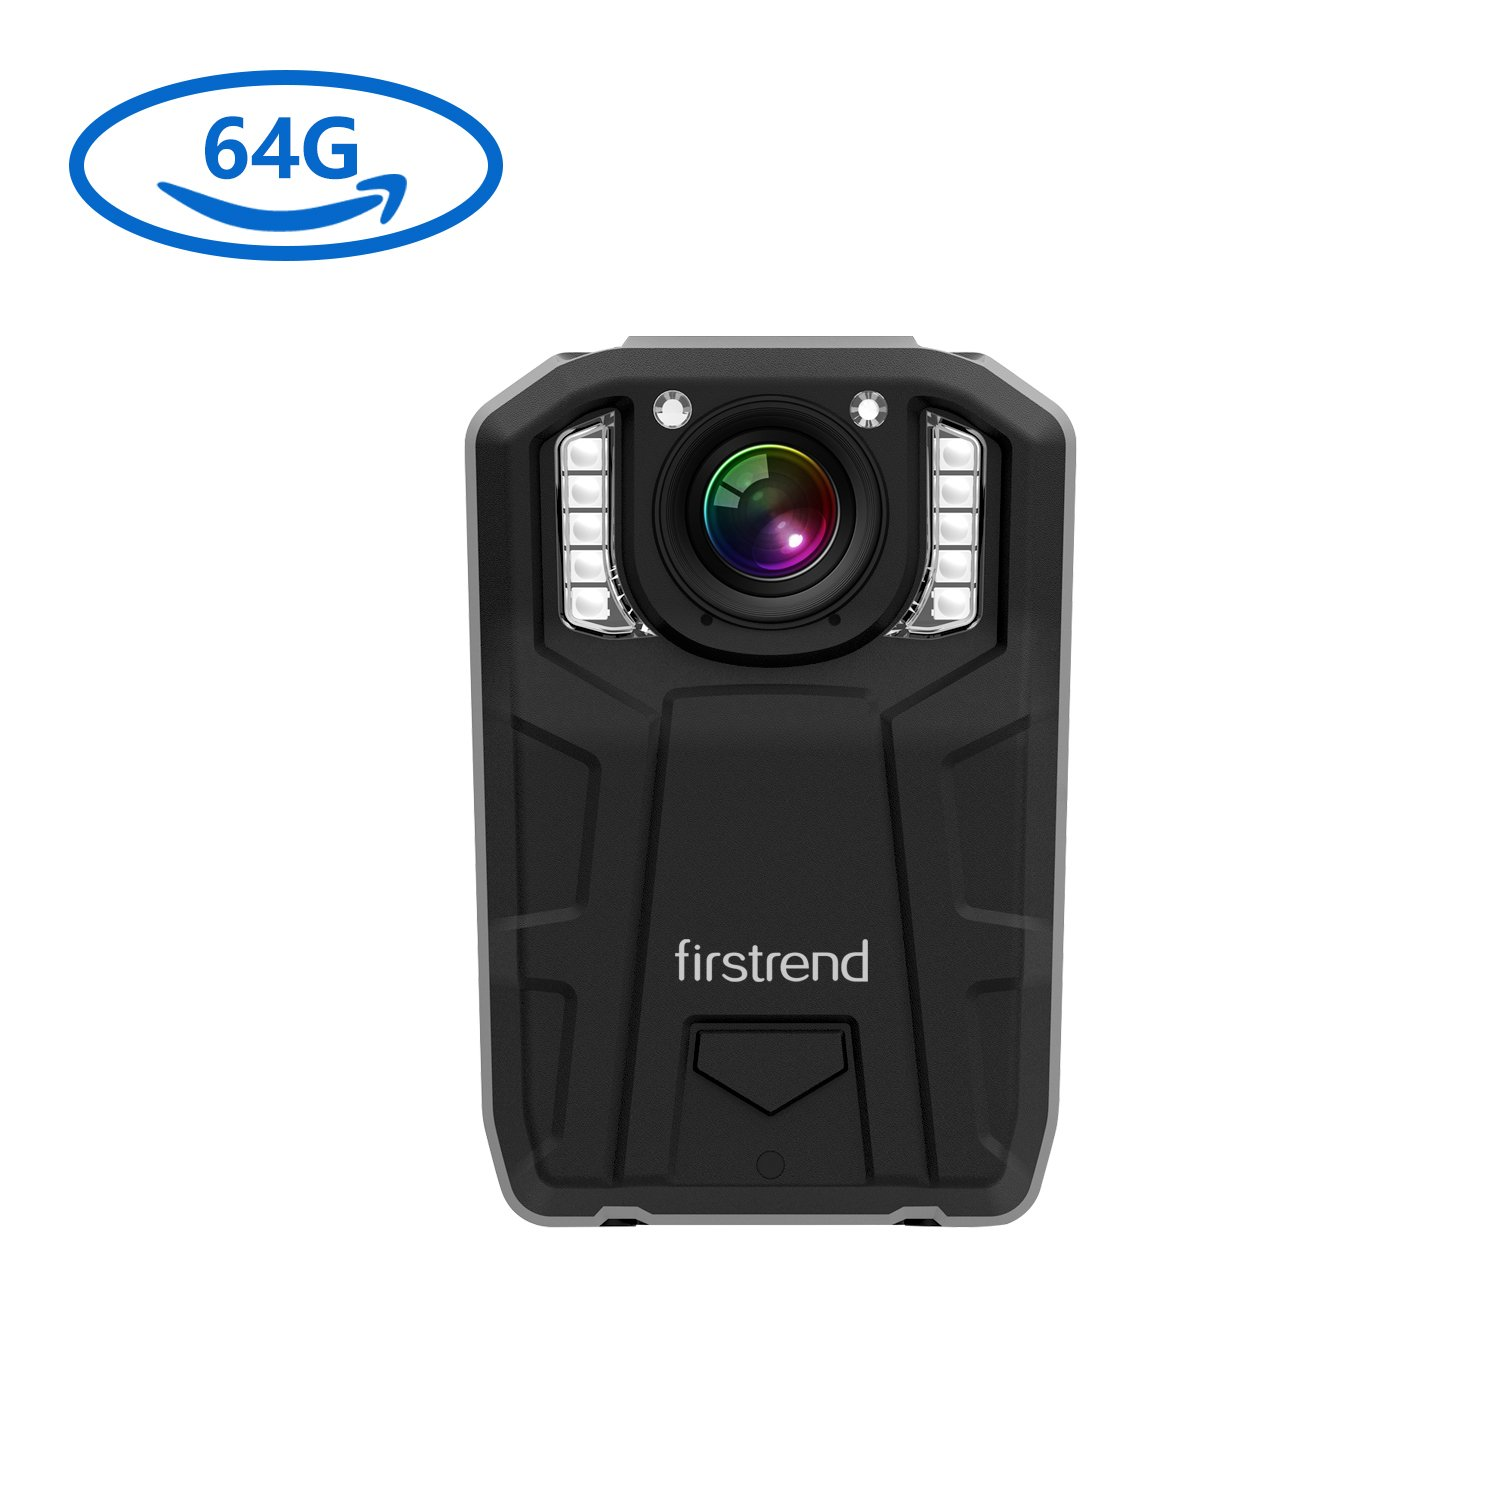 [Newest] Firstrend 1296P HD Body Camera, 6000mAh High Capacity Police Body Camera with 64GB Memory, Night Vision and IP67 Weatherproof